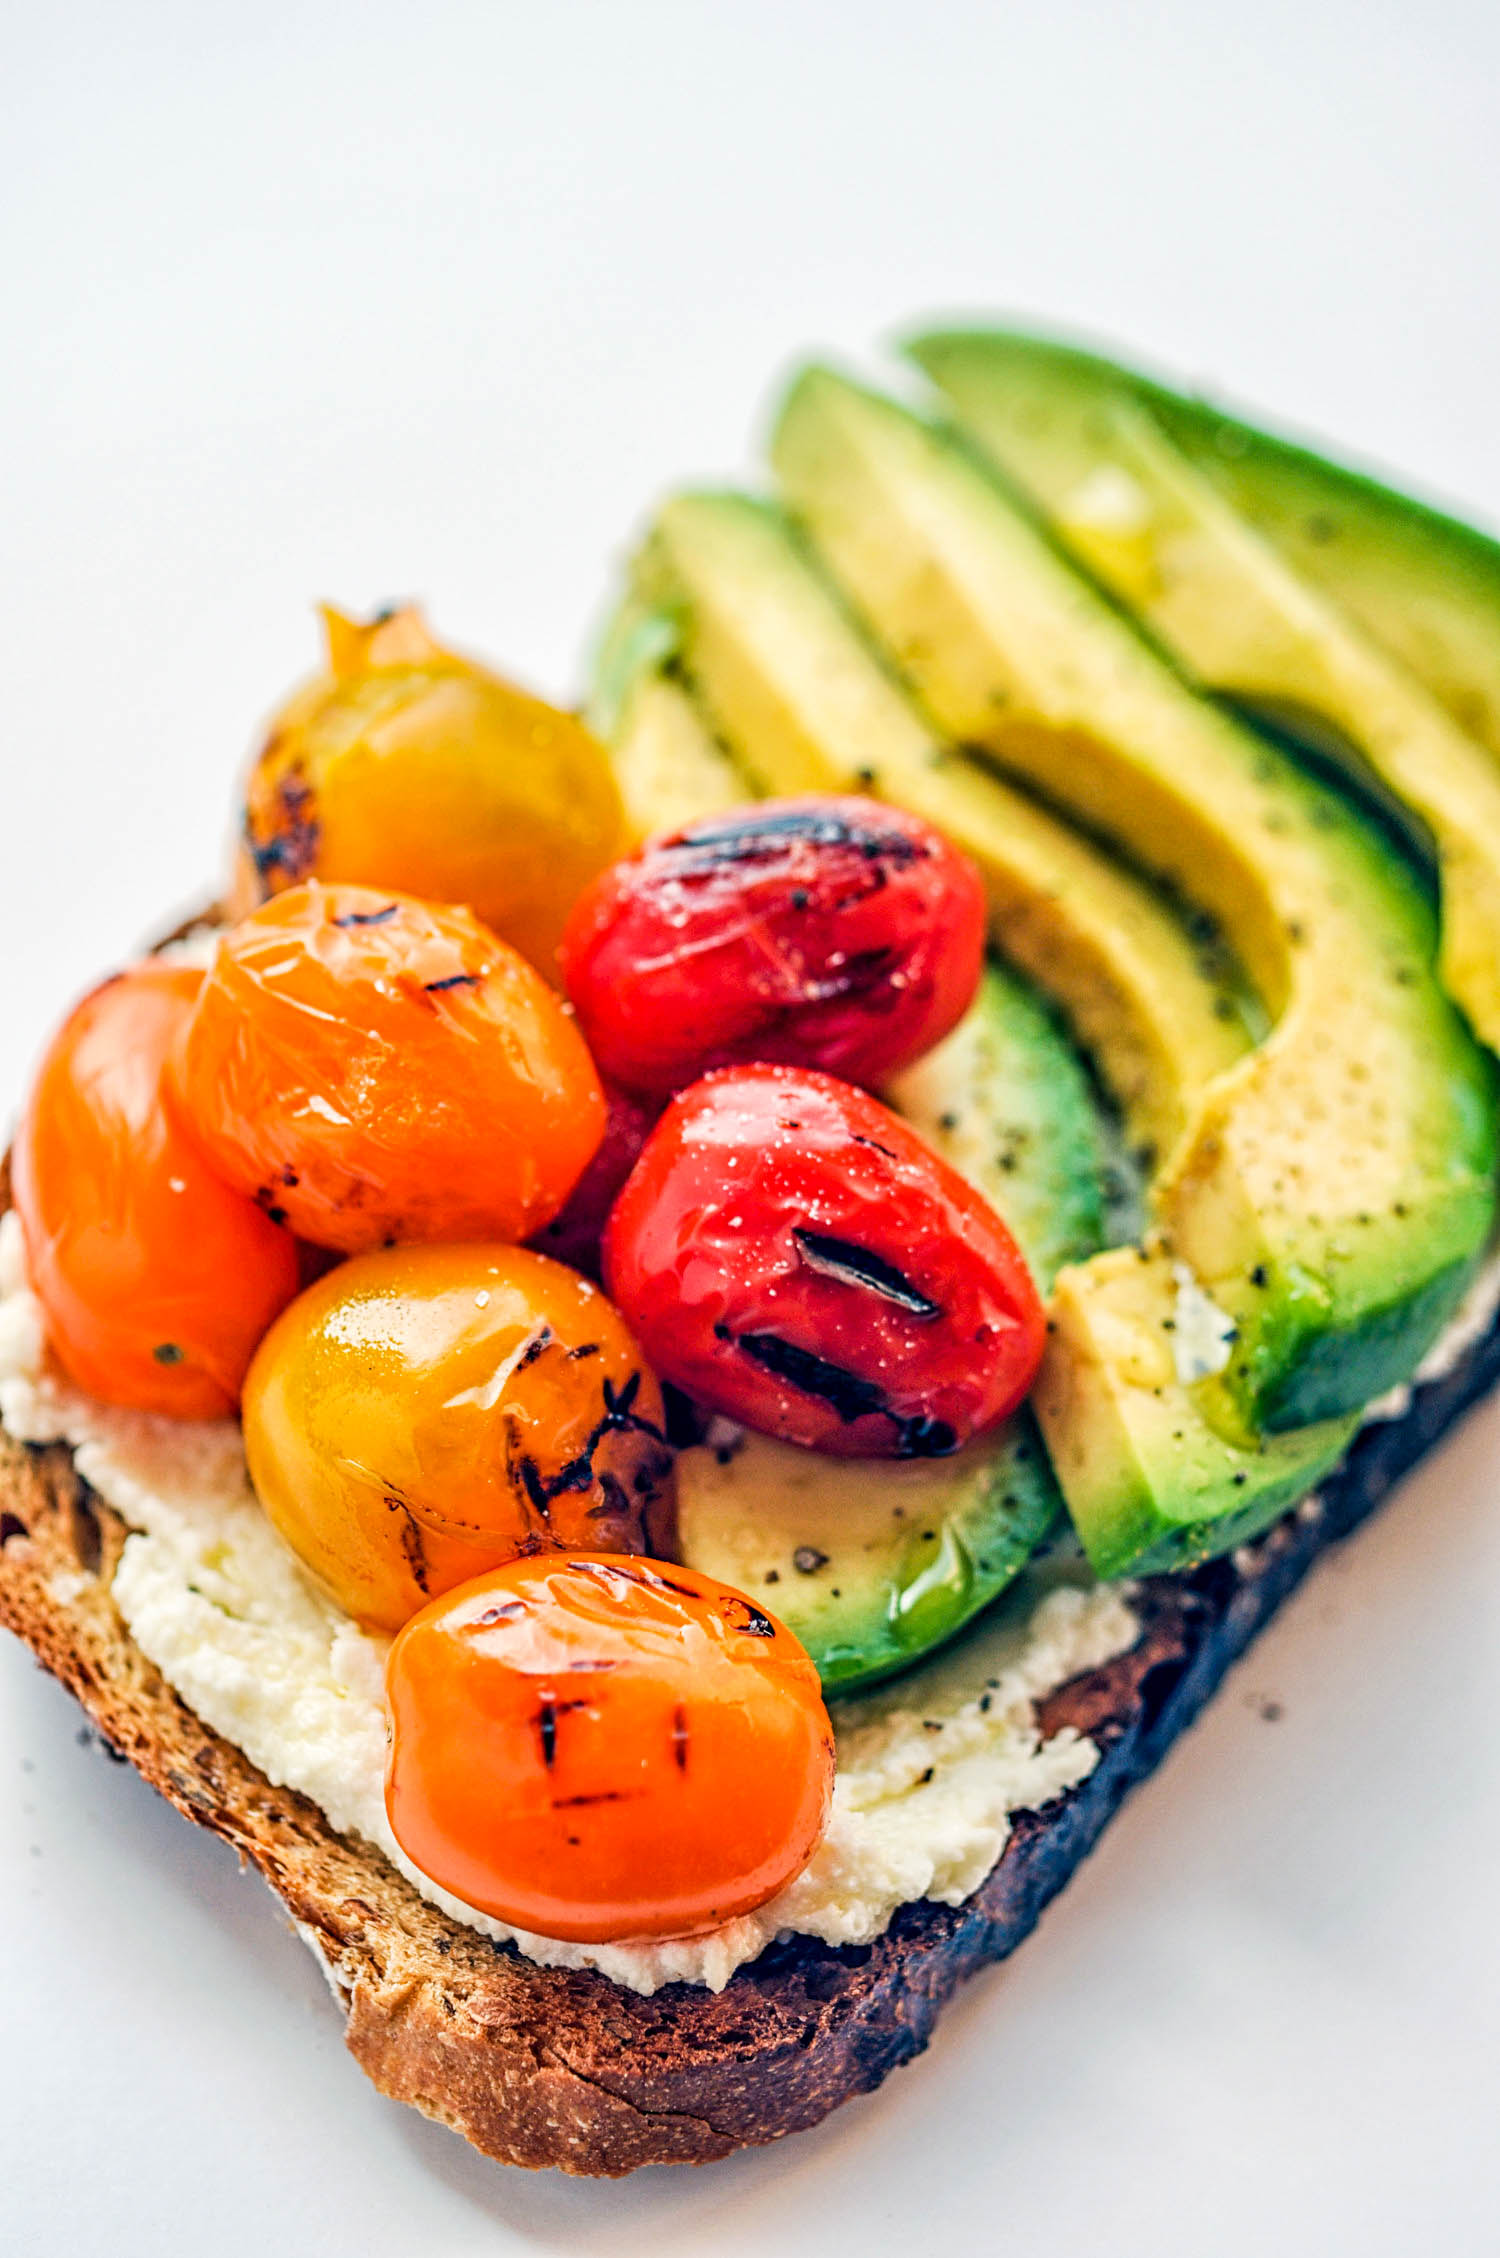 Ricotta Toast - Two Ways: Grilled Tomato & Avocado + Blueberries & Honey - A delicious, healthy breakfast or snack